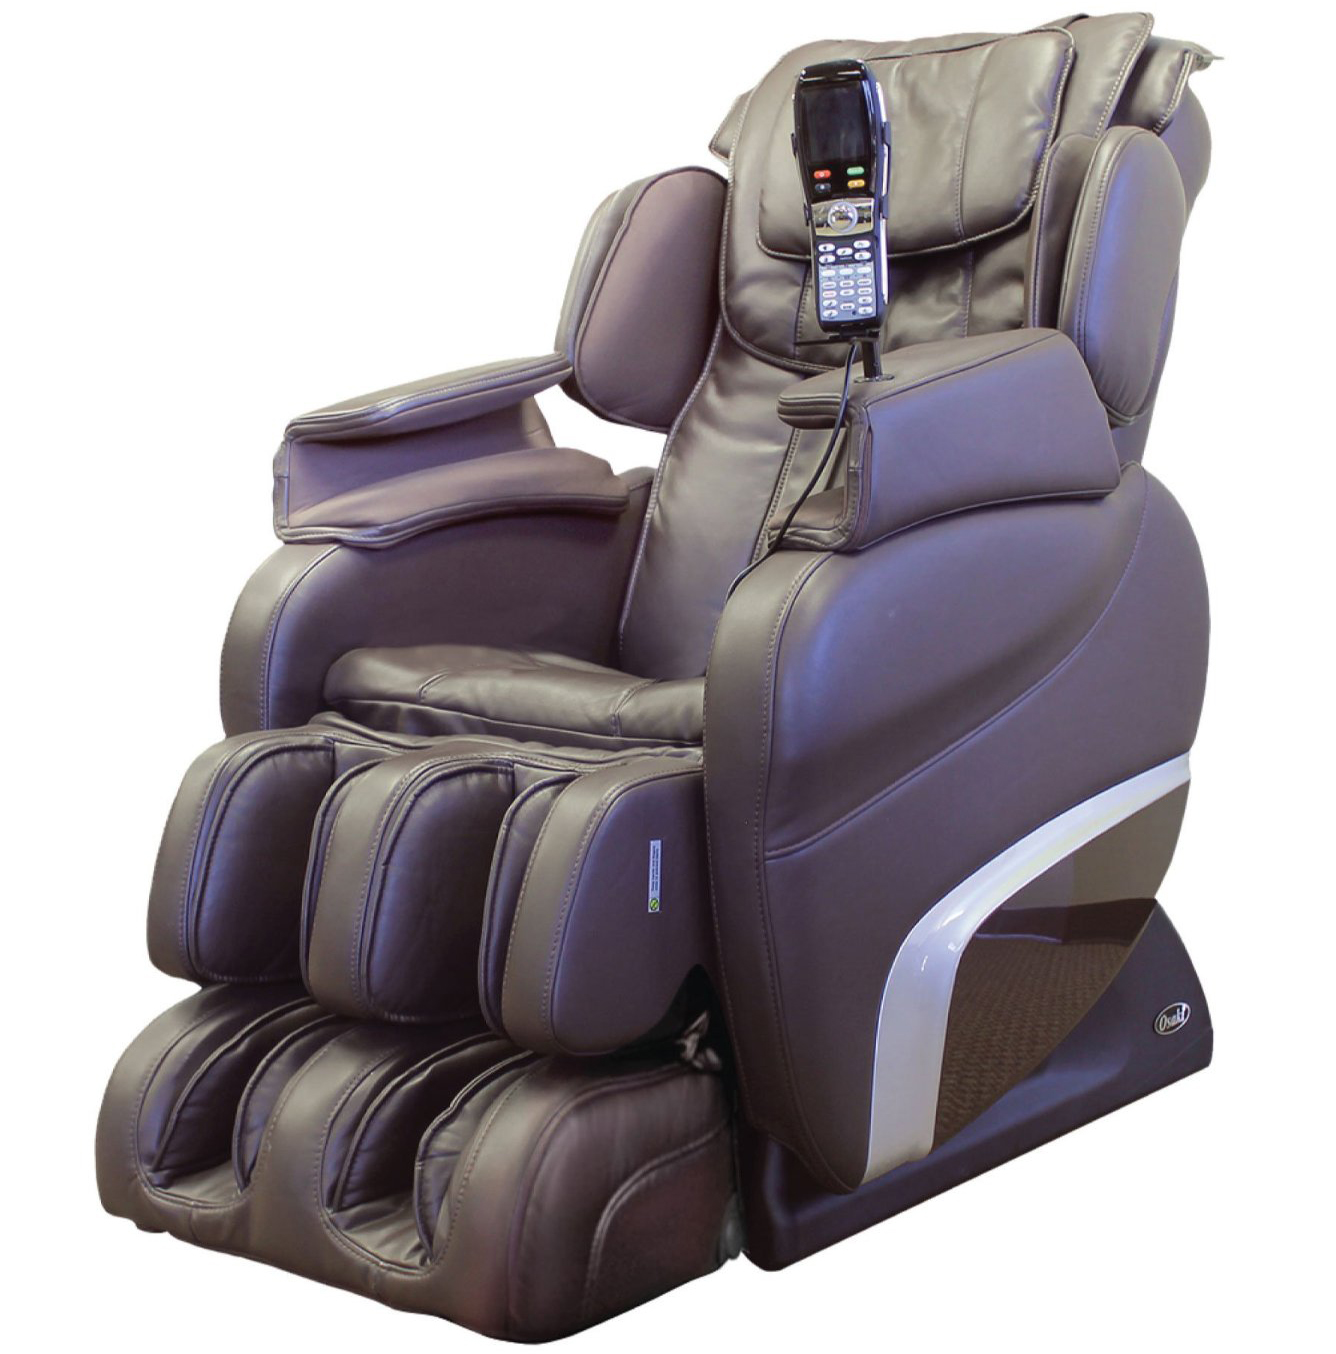 Titan TI7700R Massage Chair Recliner